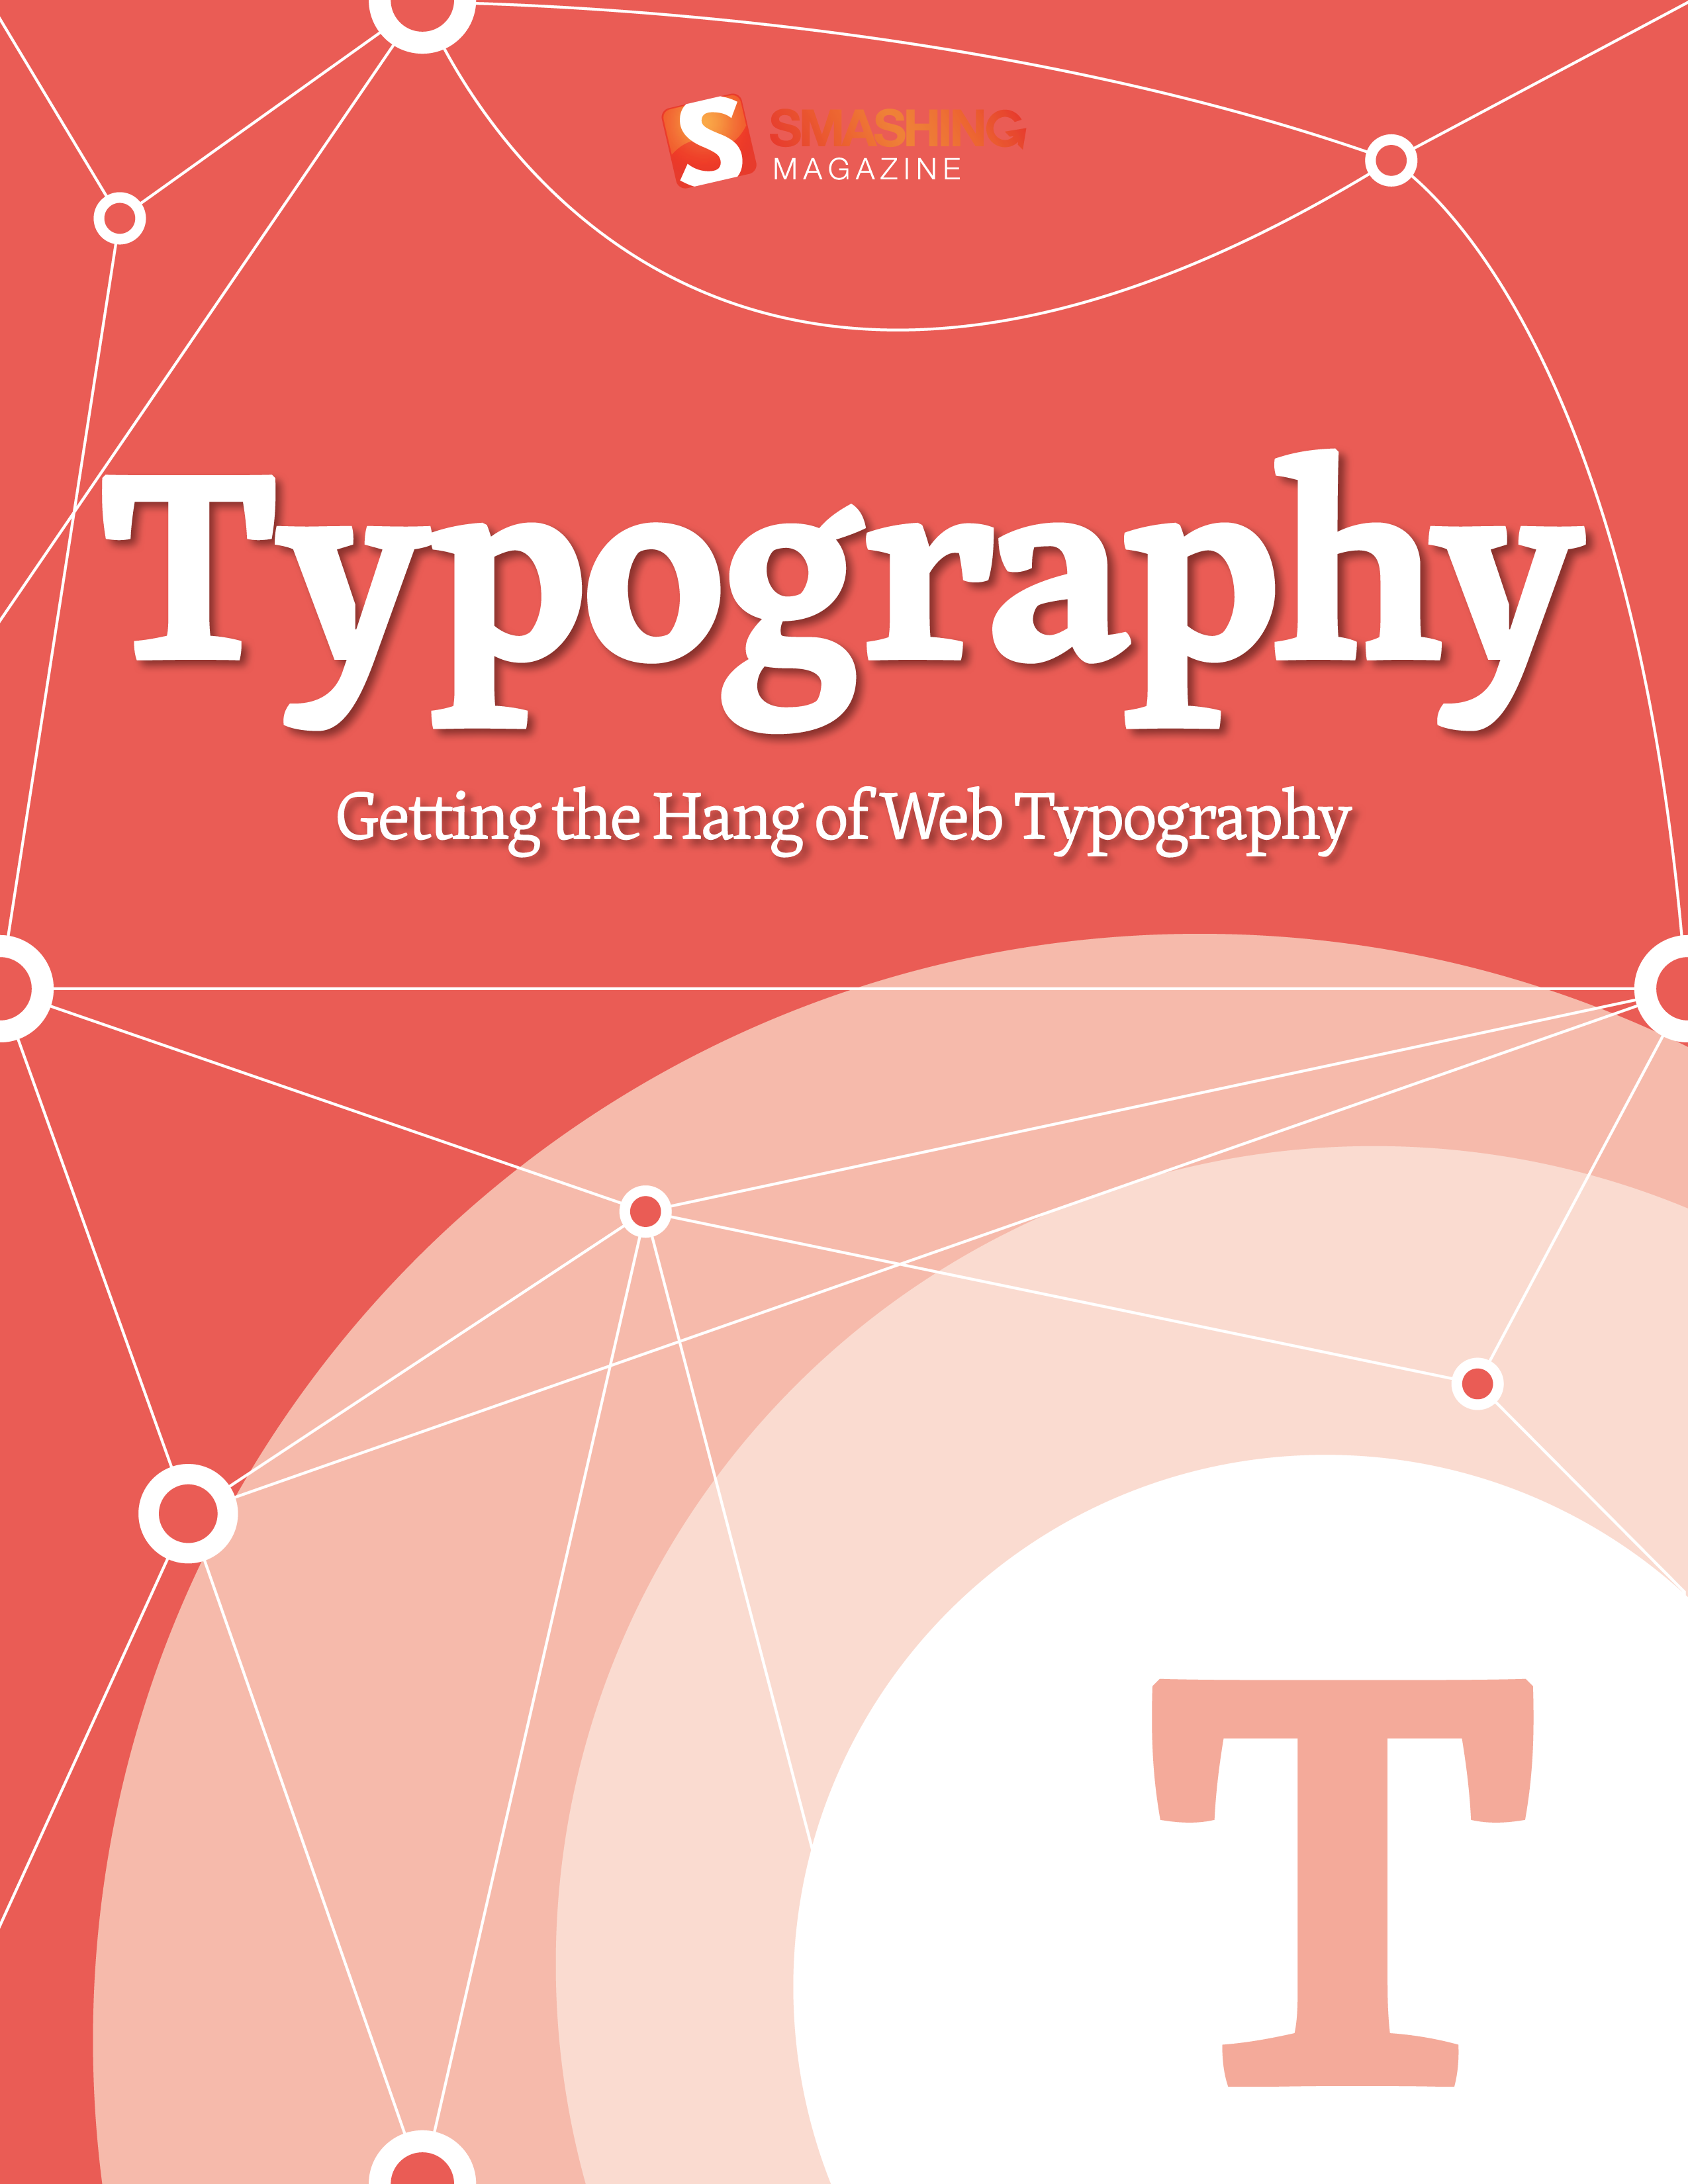 Getting the Hang of Web Typography By: Smashing Magazine